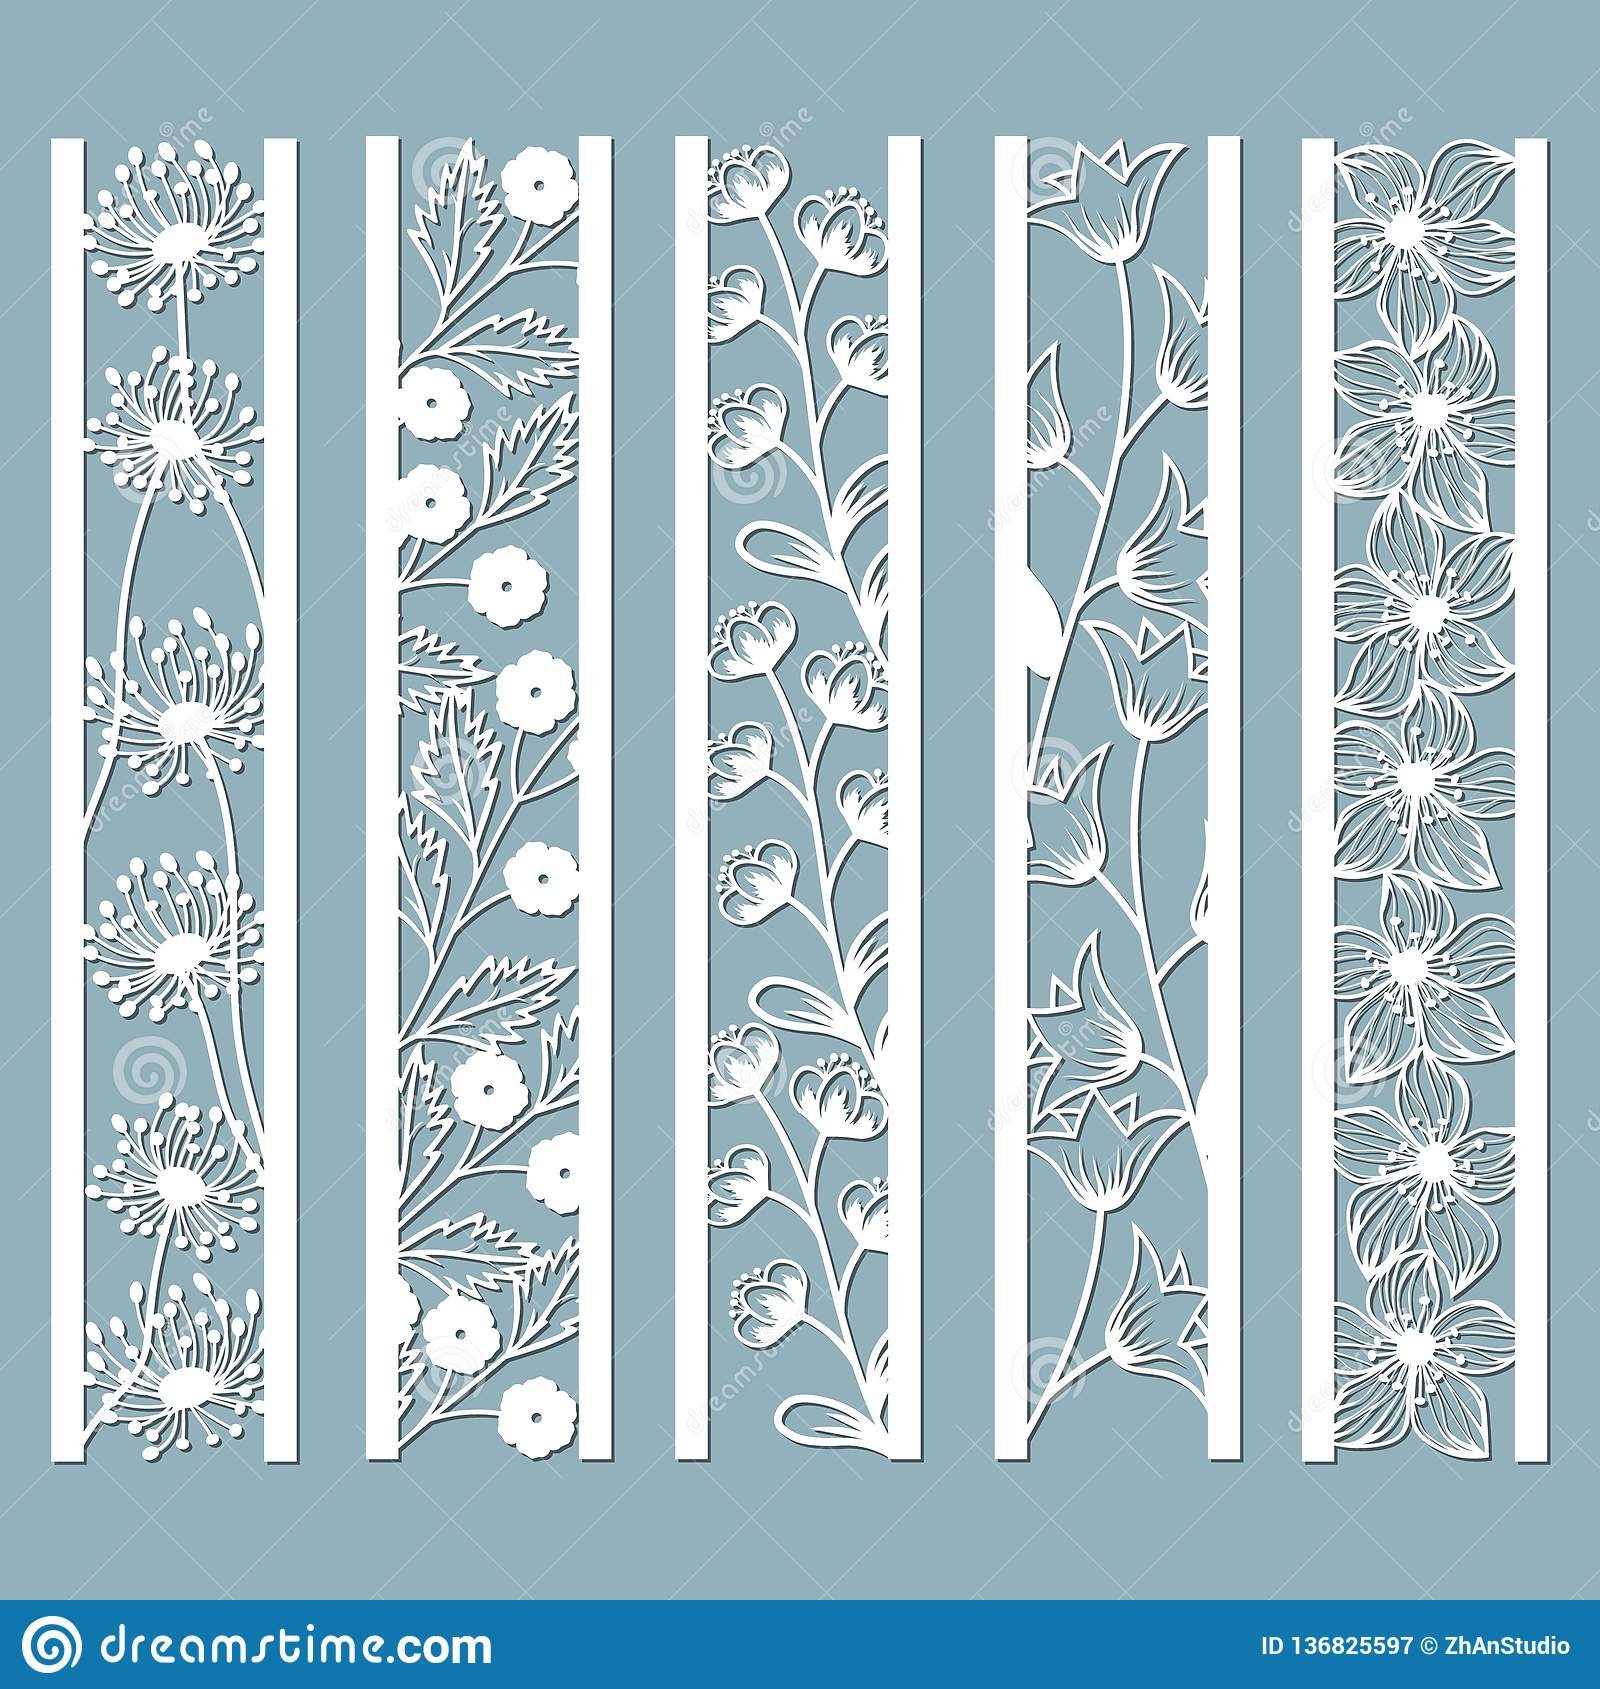 Die and laser cut ornamental panels with floral pattern. bell, dandelion, Orchid, flowers and leaves. Laser cut decorative lace